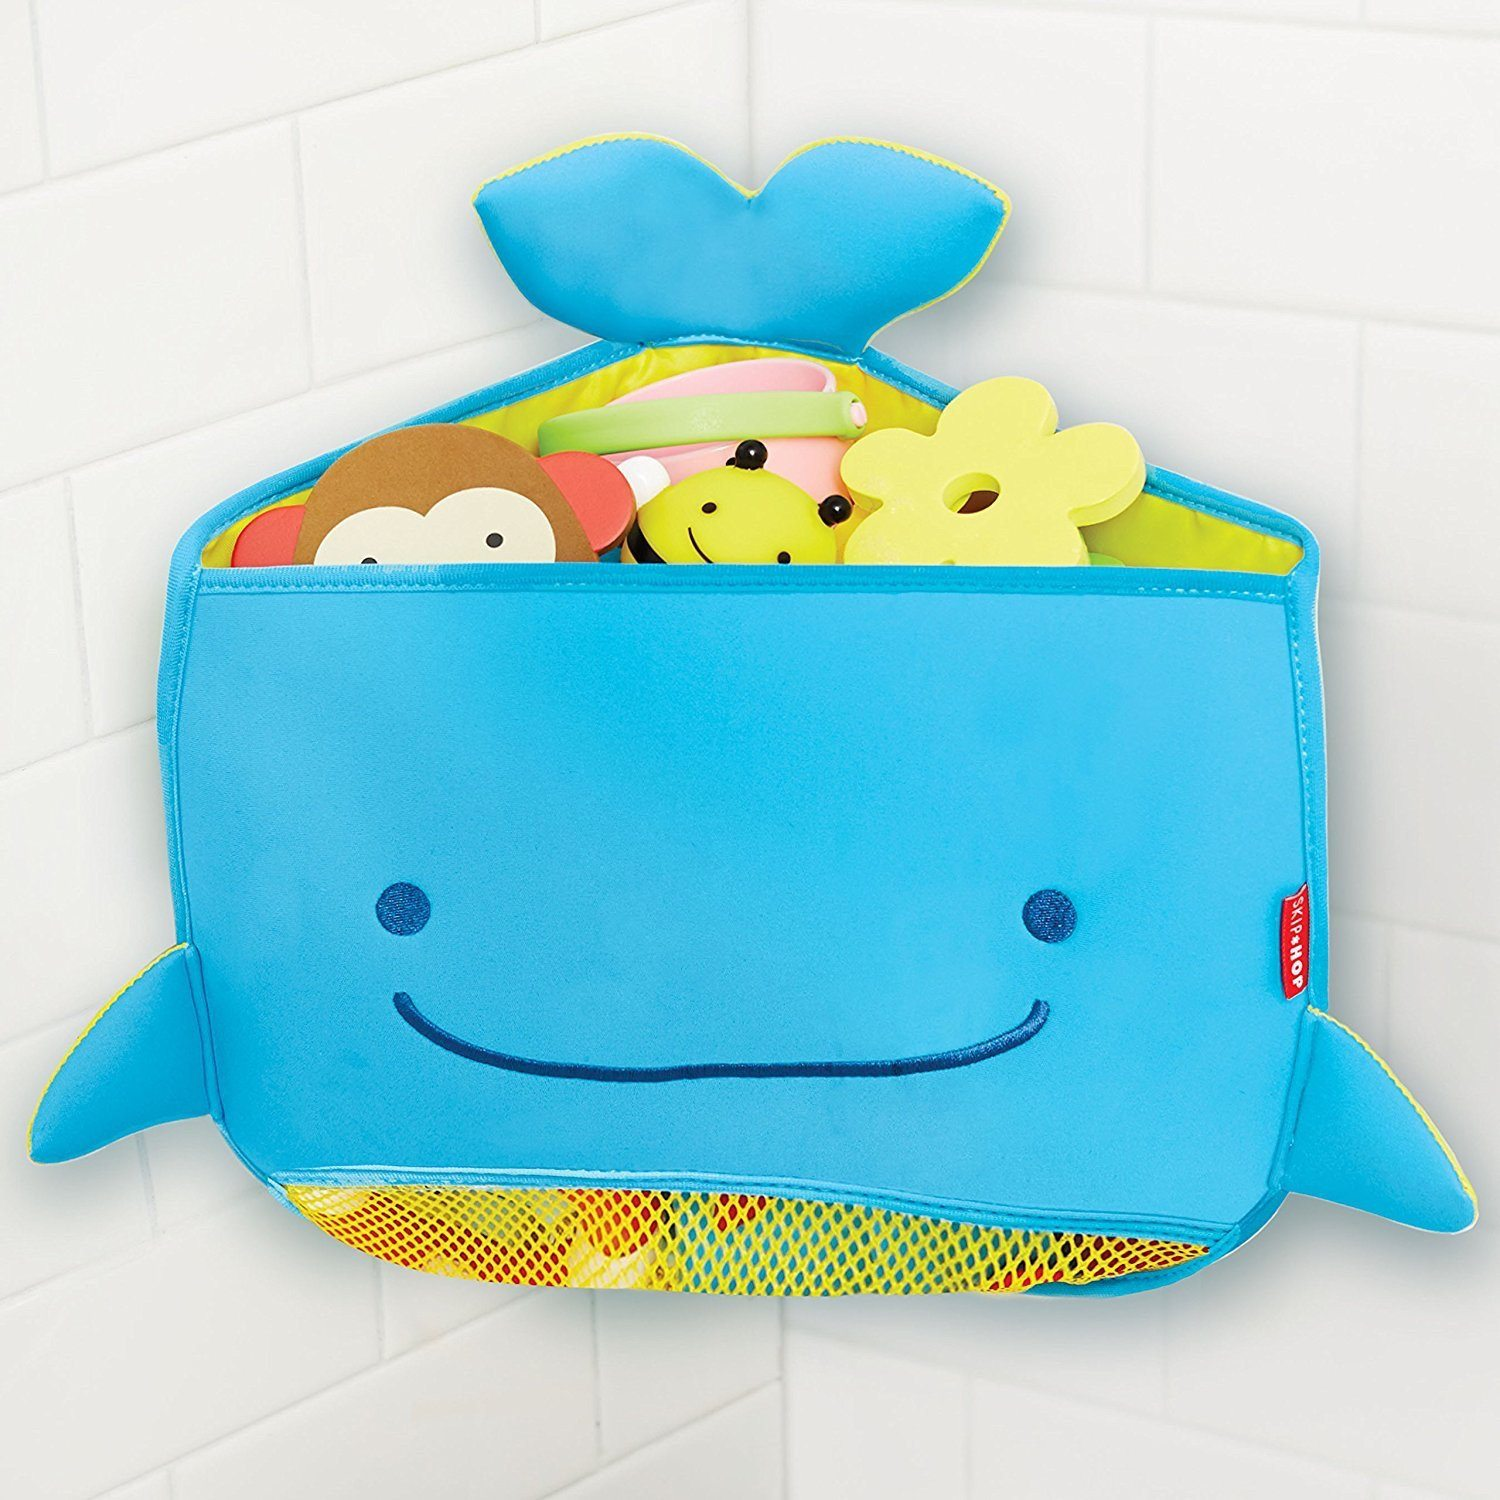 moby-corner-bath-toy-storage-bag-with-toys.jpg